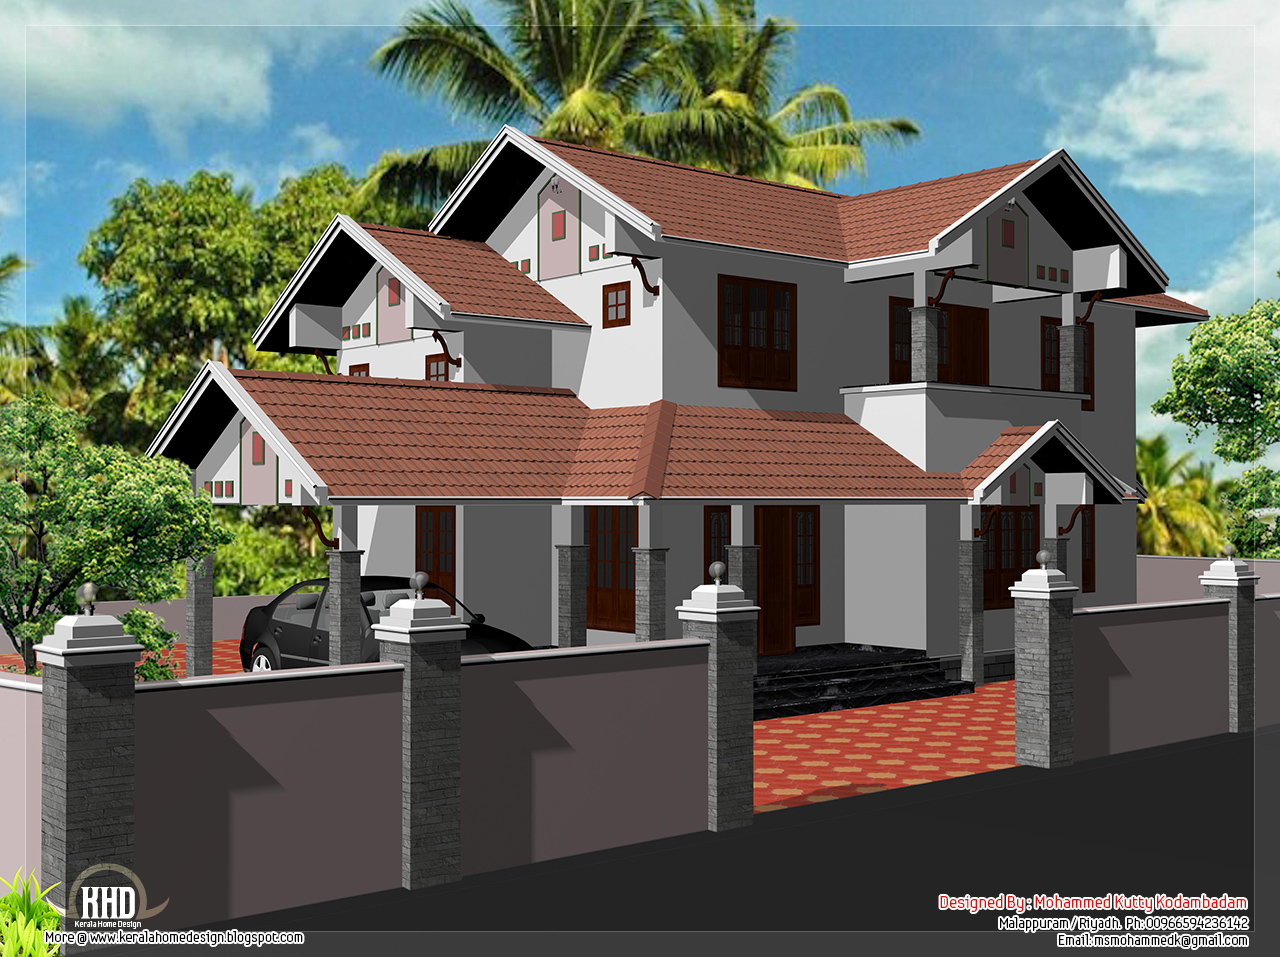 2000 house elevation design kerala home House designs 2000 square feet